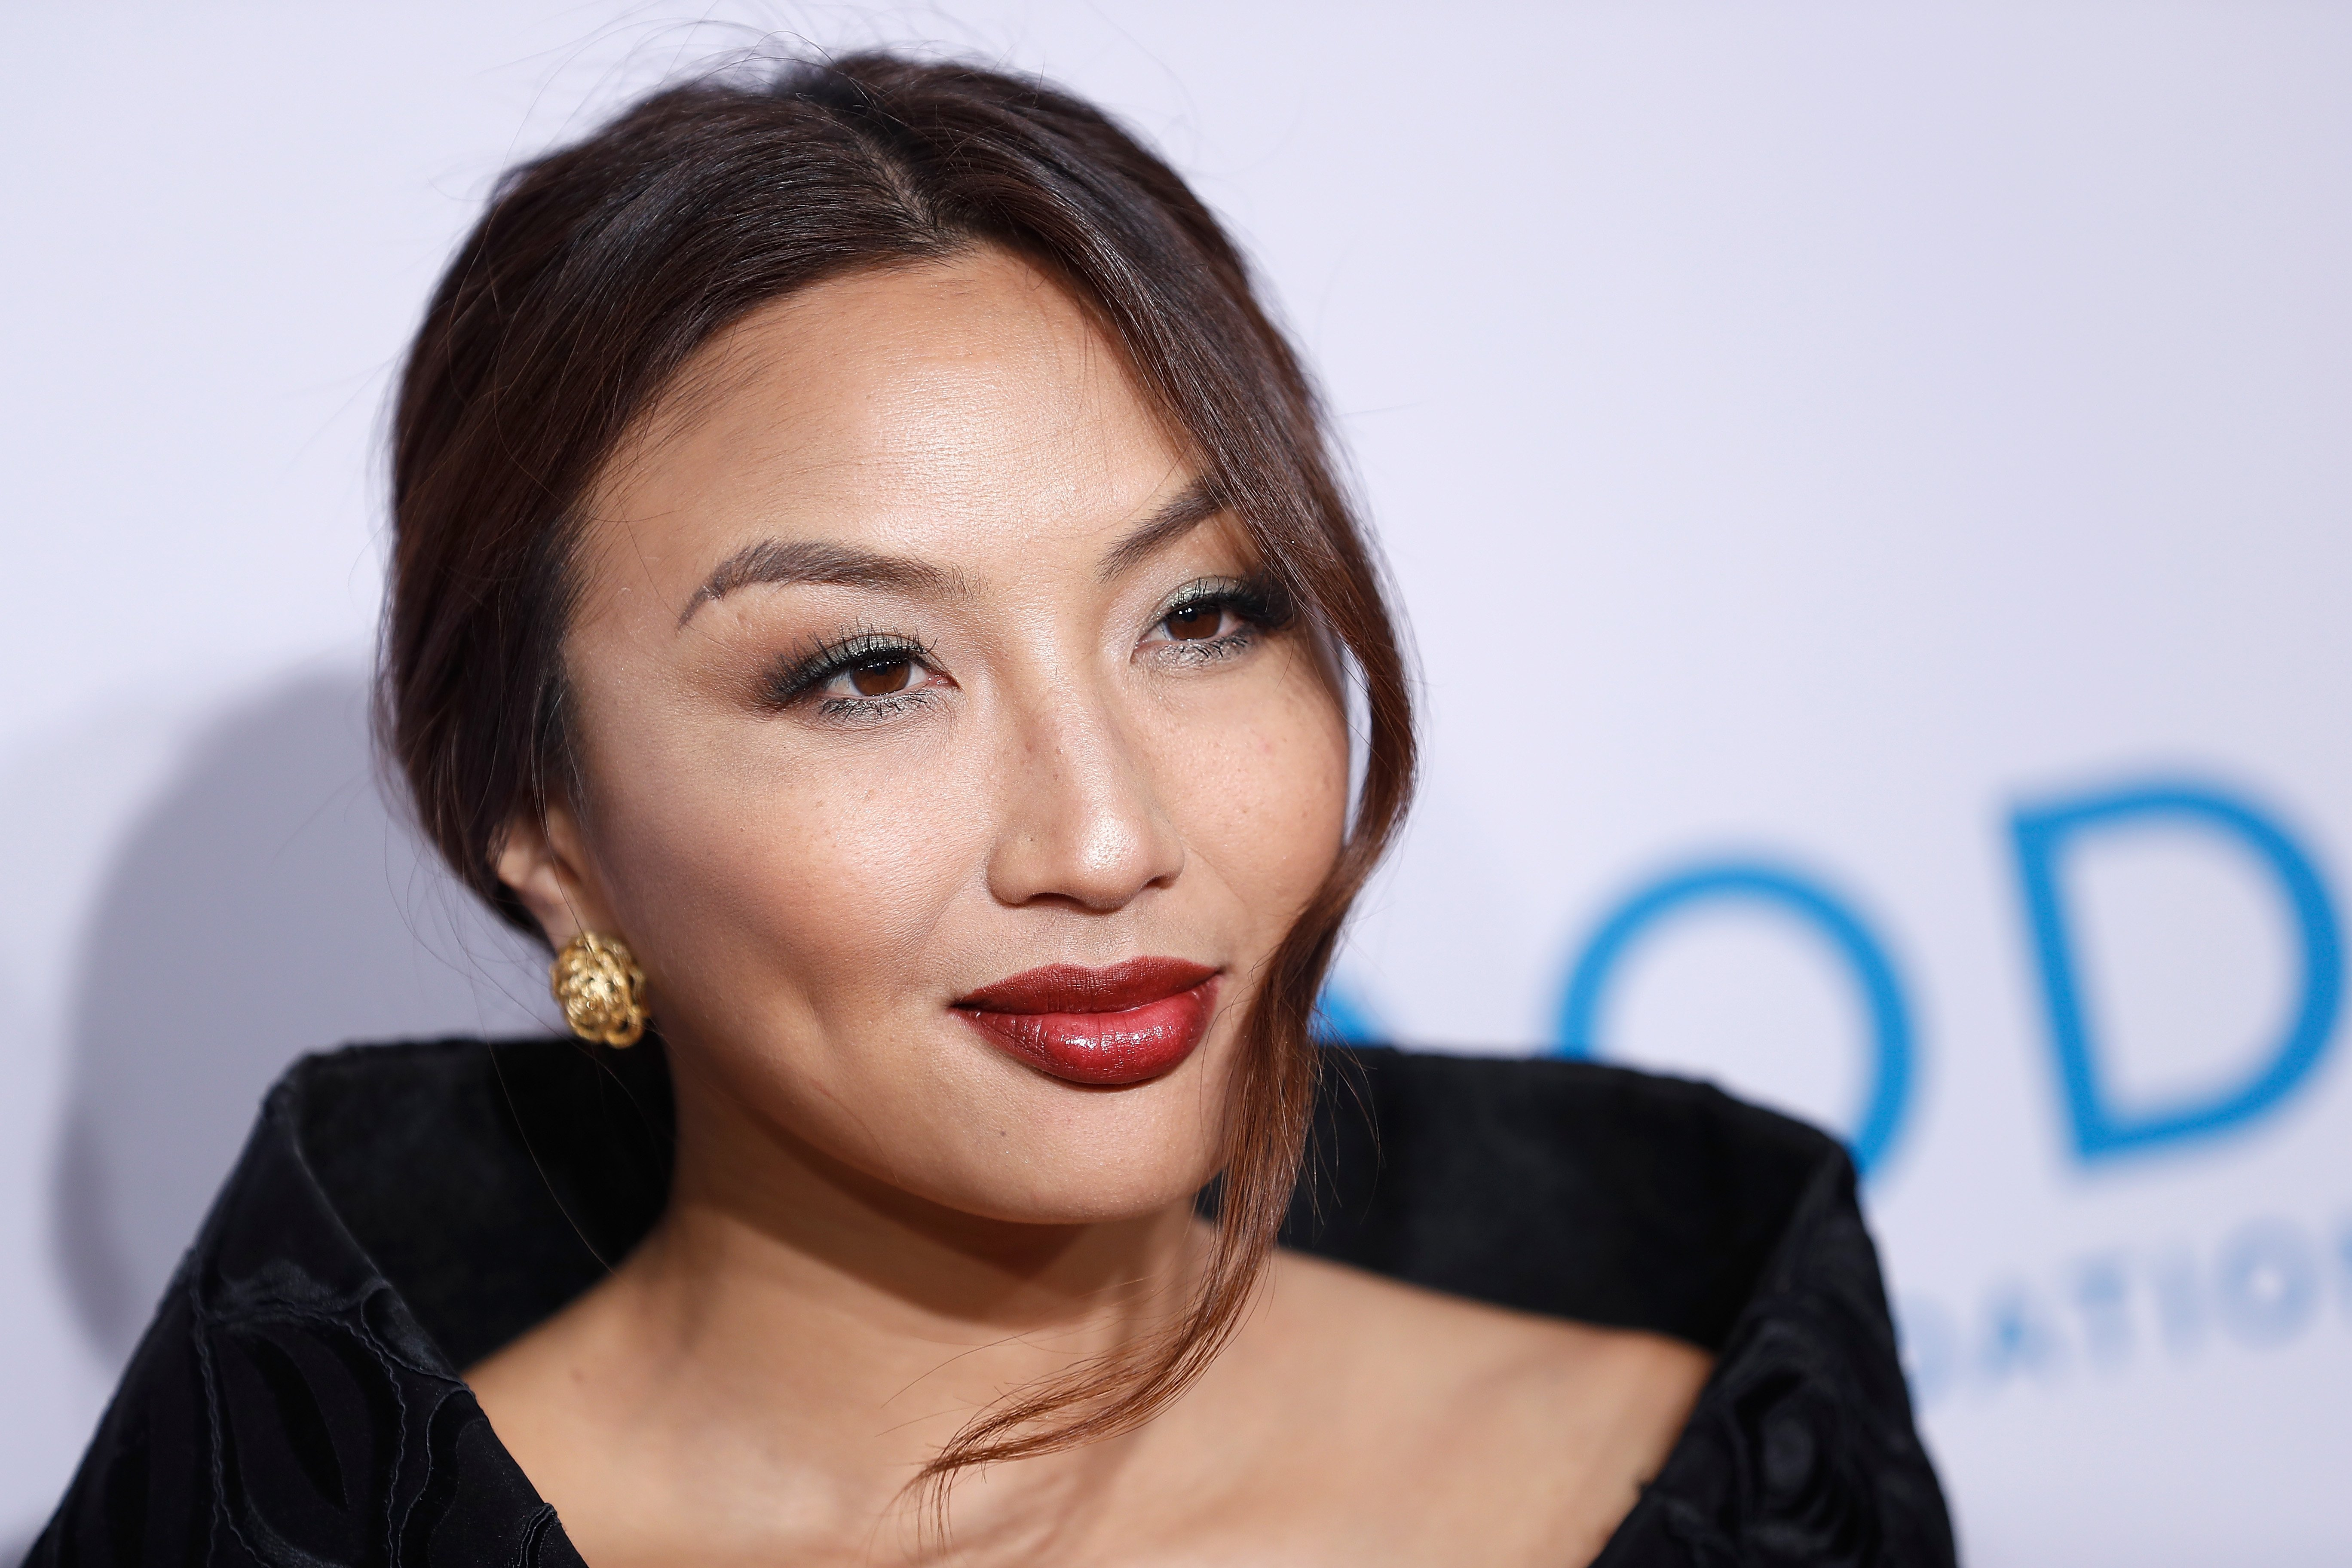 eannie Mai attends 2018 Samsung Charity Gala at The Manhattan Center on September 27, 2018 in New York City.| Photos : Getty Images